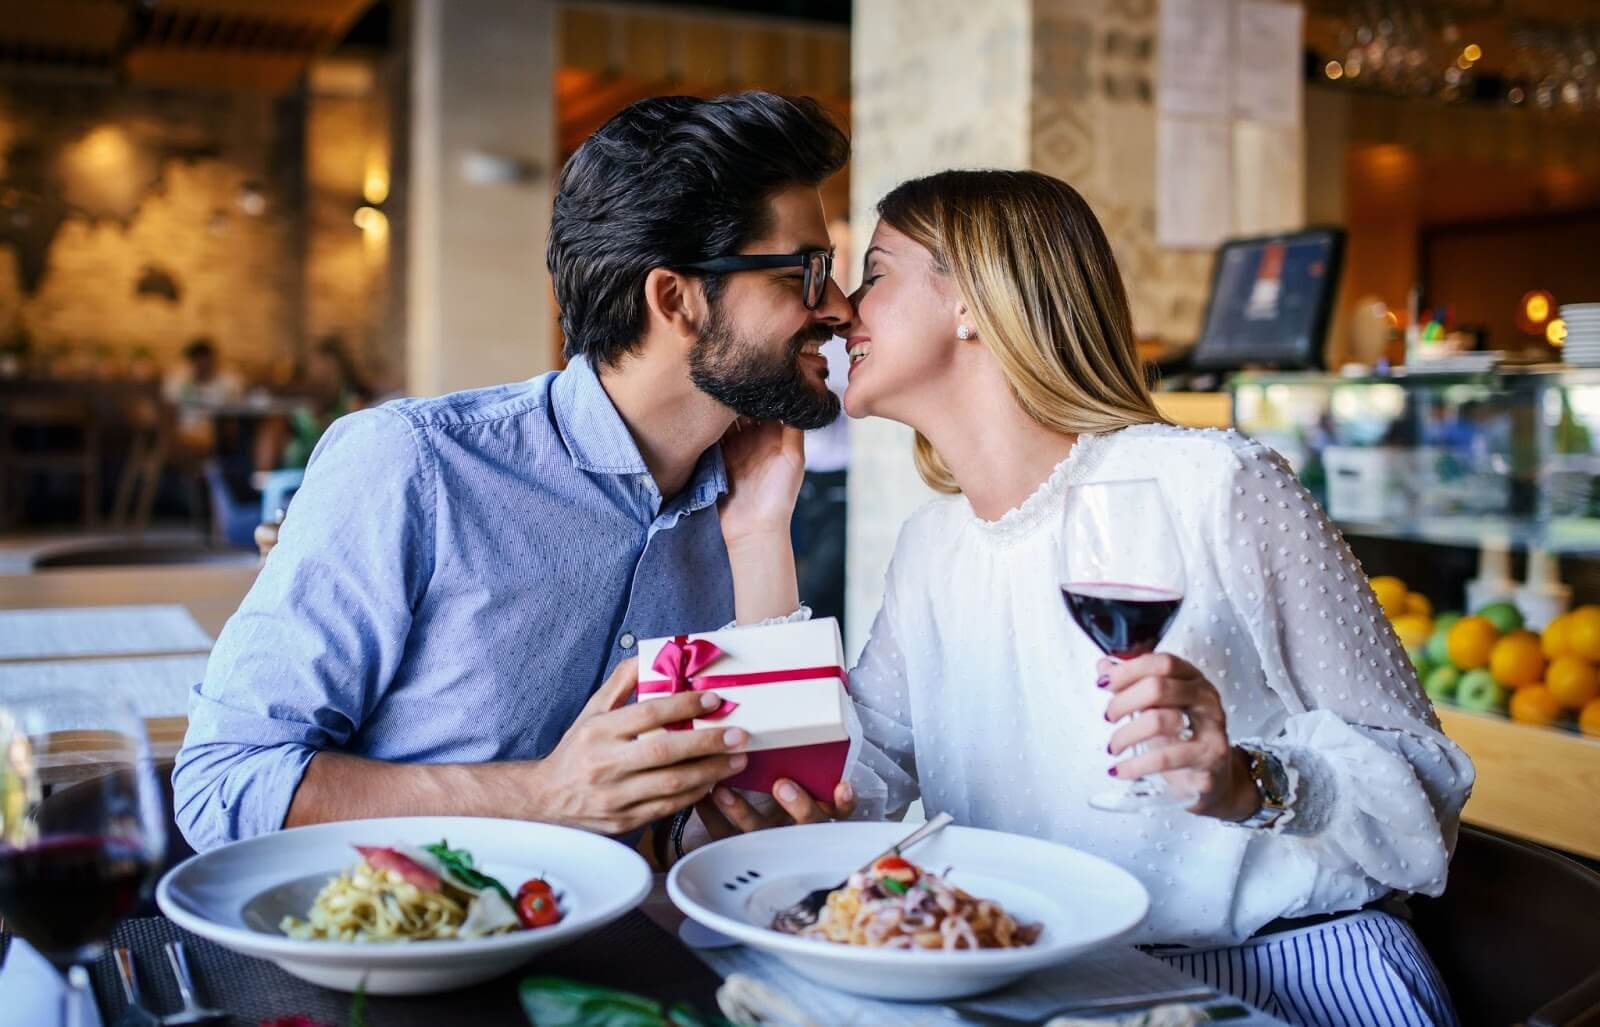 Man exchanging gift to woman in a restaurant